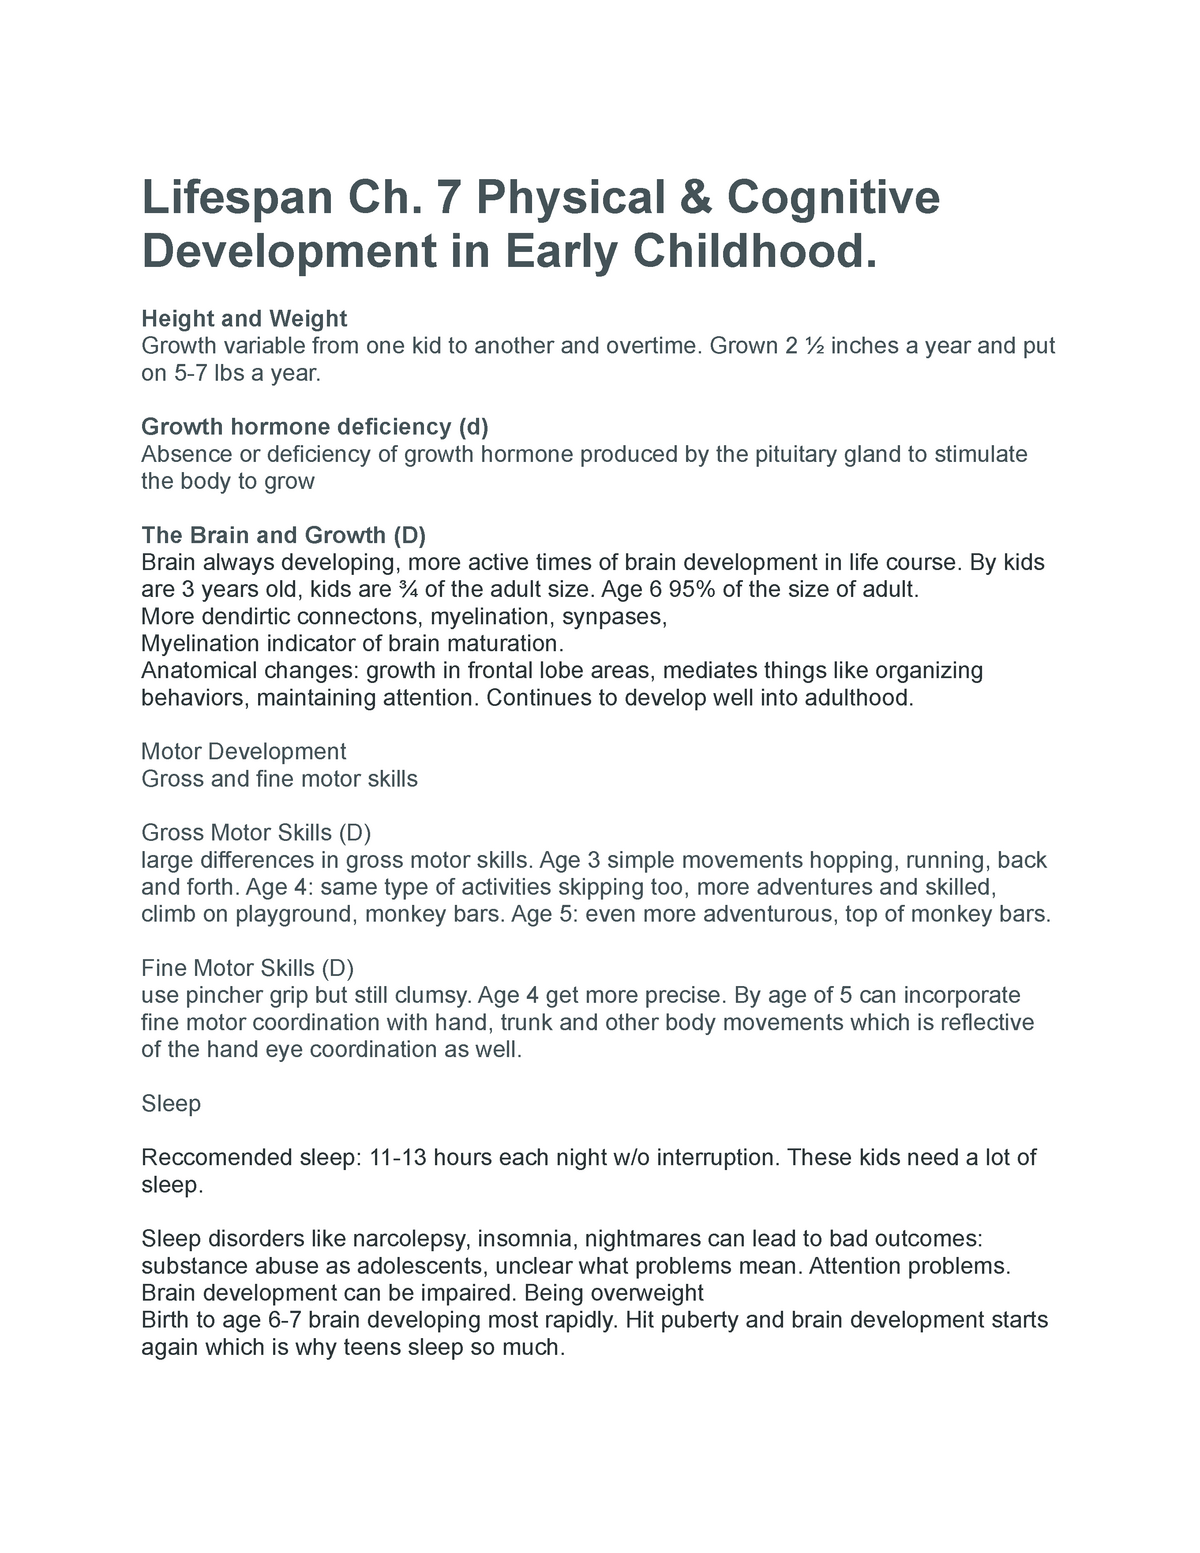 Attention Problems In Early Childhood >> Lifespan Ch 7 Physical Cognitive Development In Early Childhood